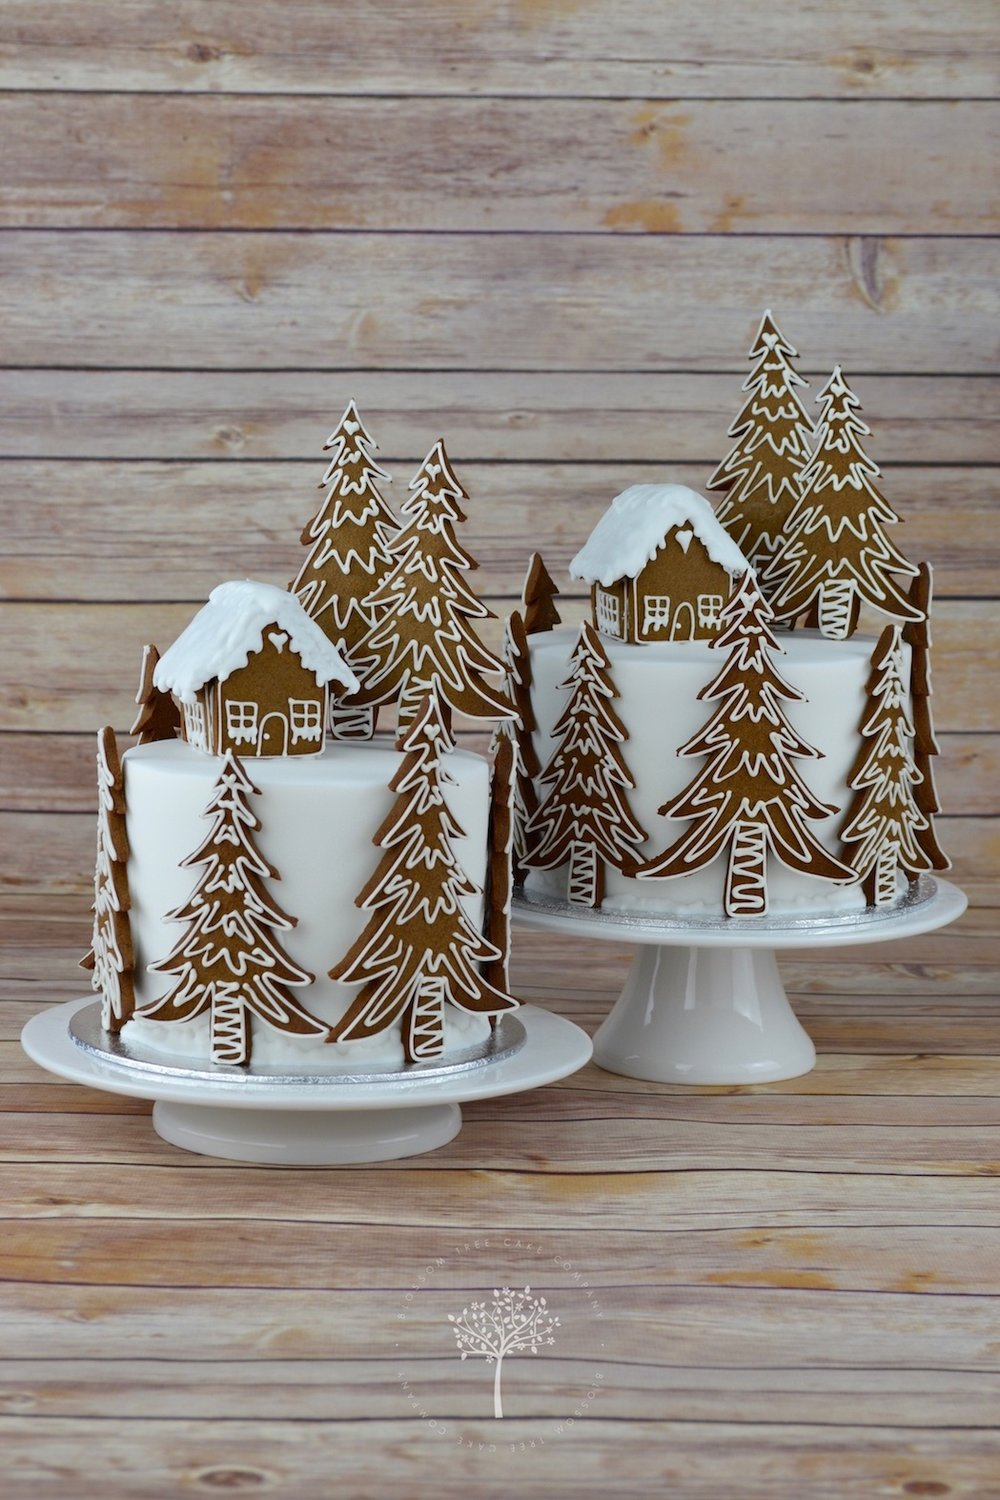 2015 Gingerbread Christmas Cake by Blossom Tree Cake Company Harrogate North Yorkshire.jpg